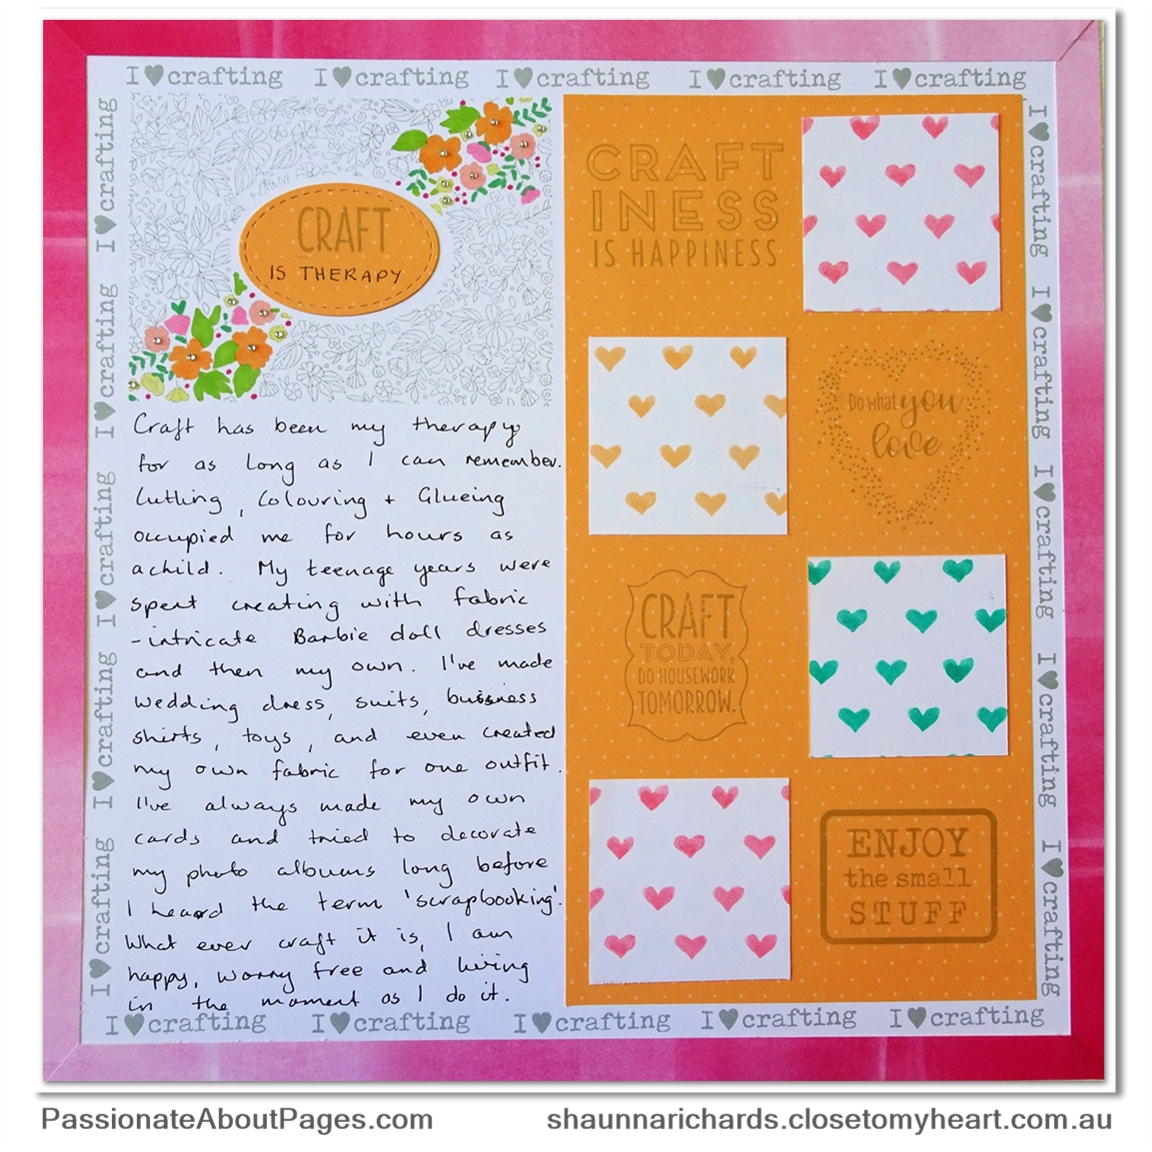 S1808 For the Love of Crafting stamp set is availalbe during August, 2018 only at www.shaunnarichards.closetomyheart.com.au. All crafters need this one in their stash.